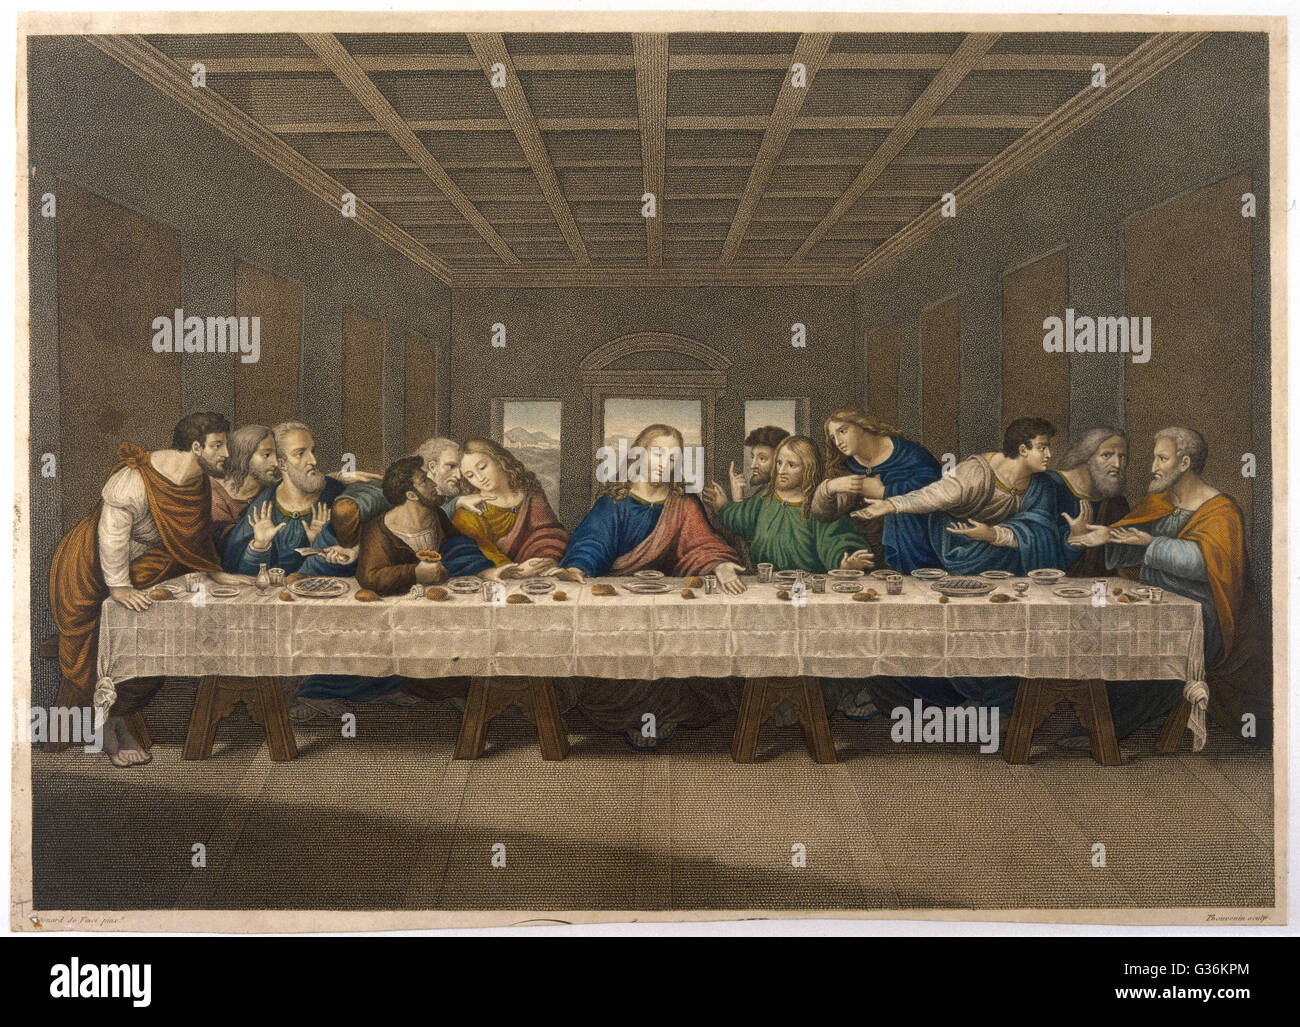 jesus christ at the last supper with his disciples stock photo